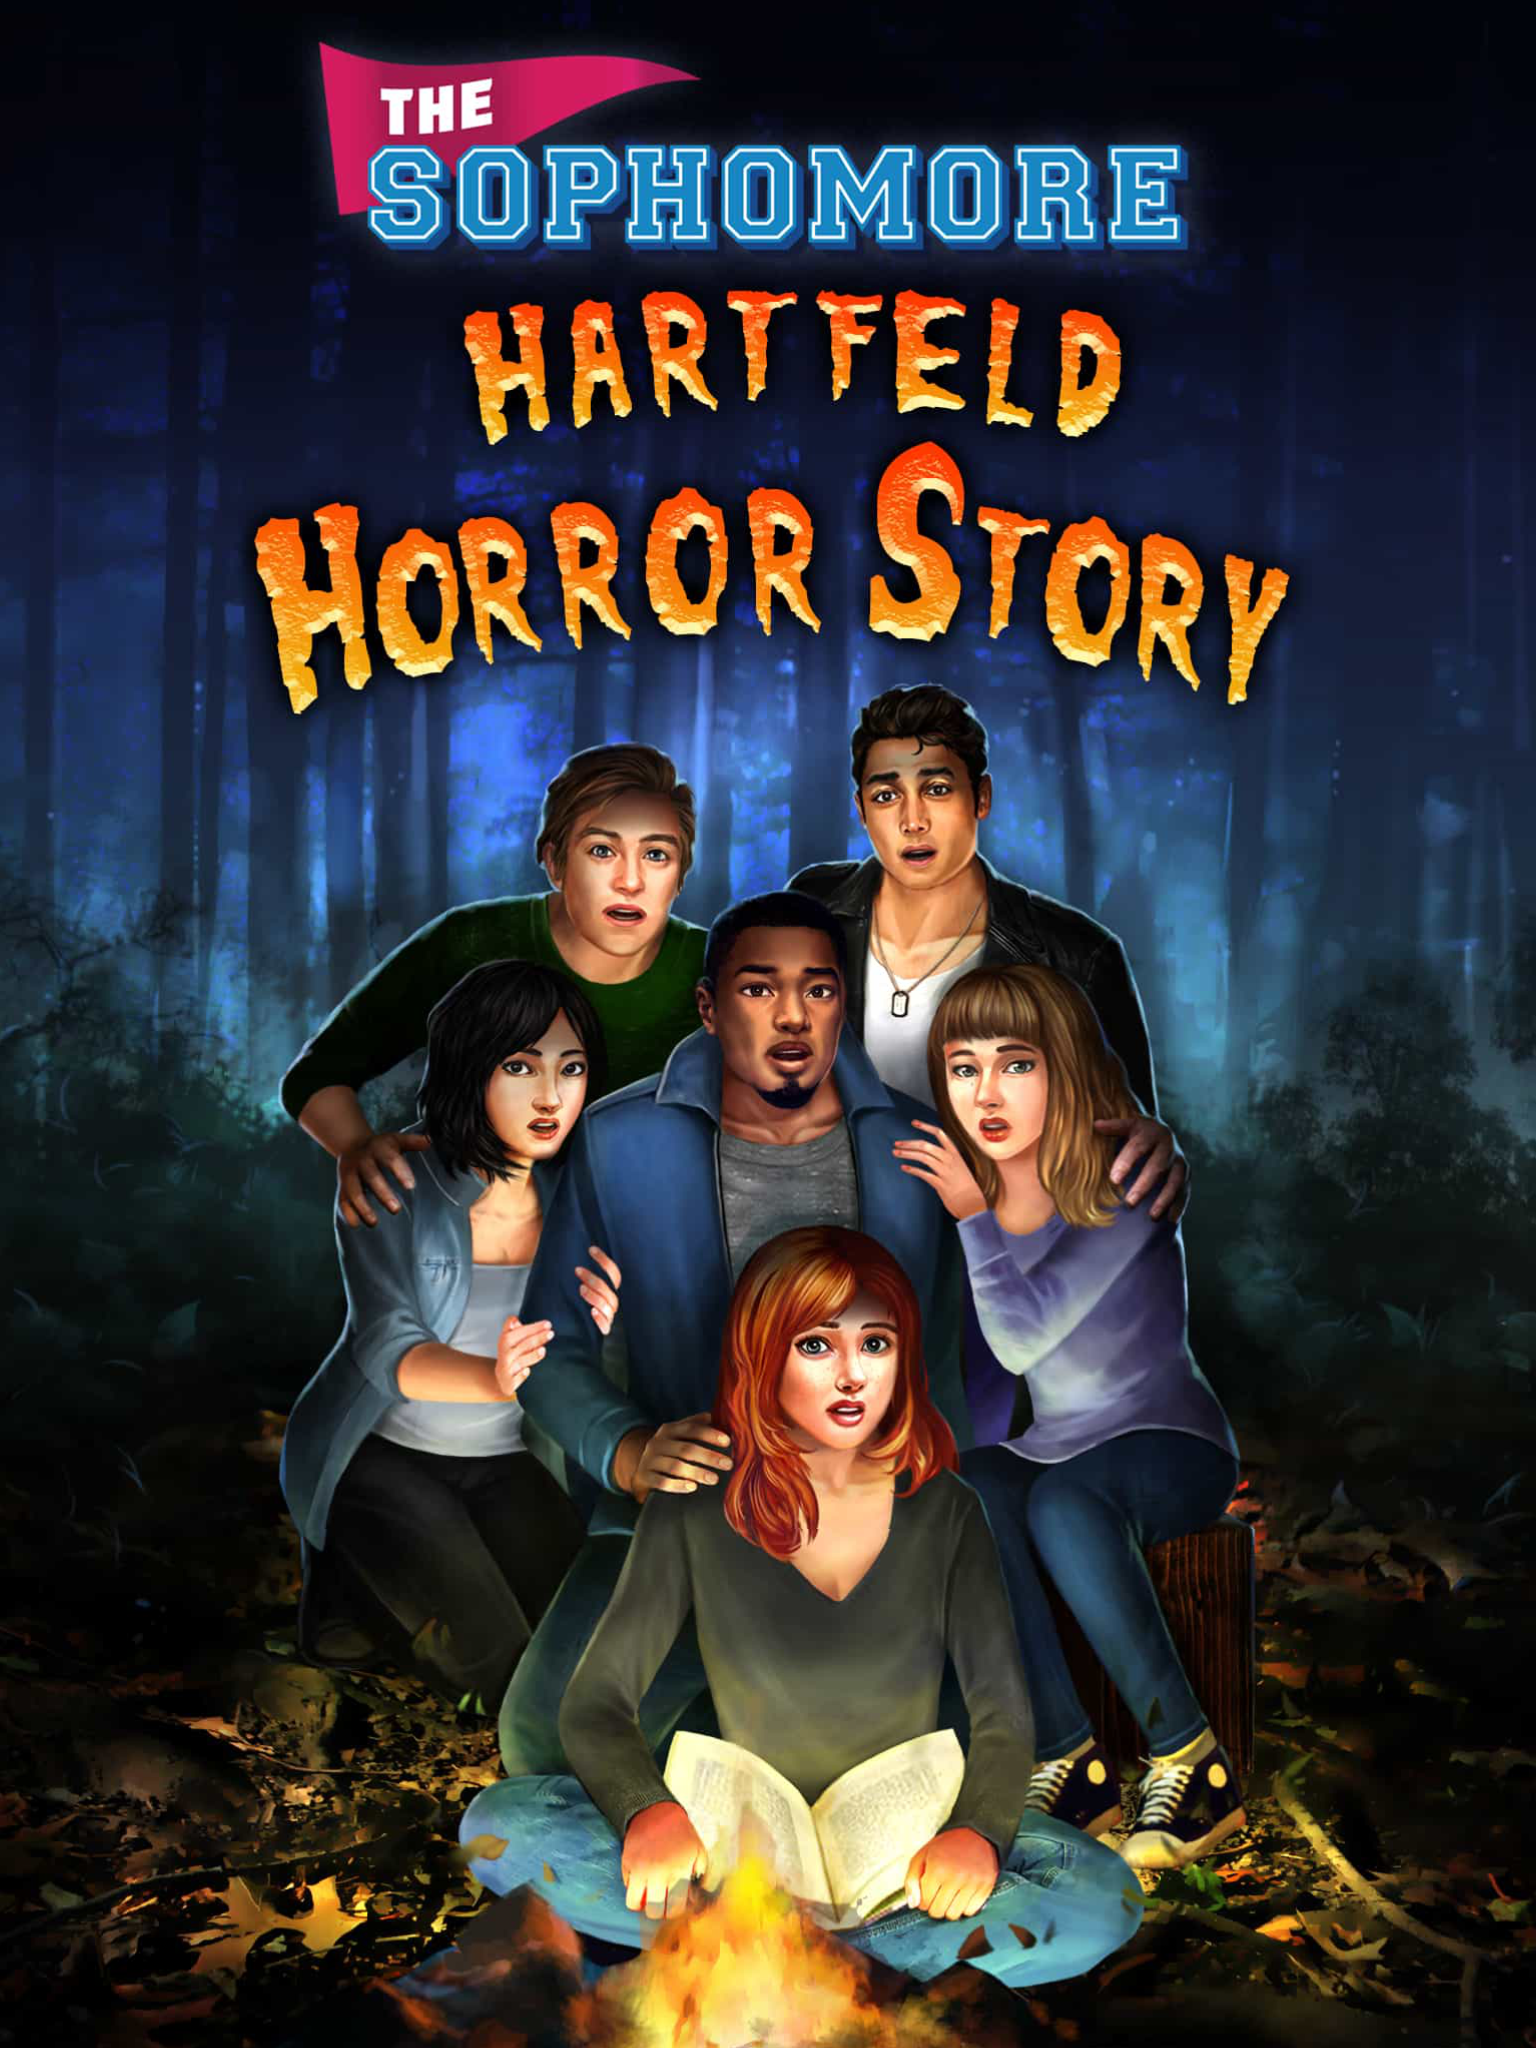 The Sophomore: Hartfeld Horror Story Choices